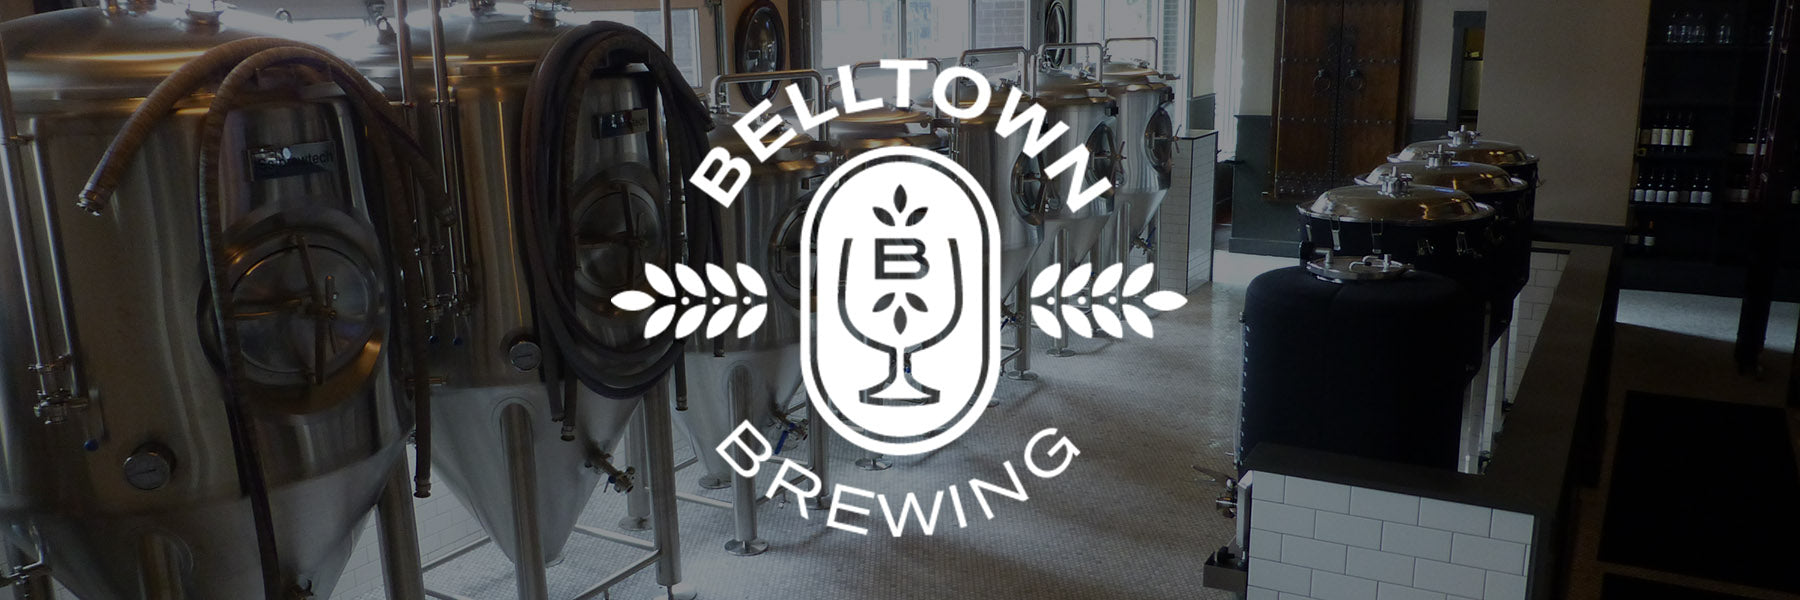 Belltown Brewing | Seattle, WA